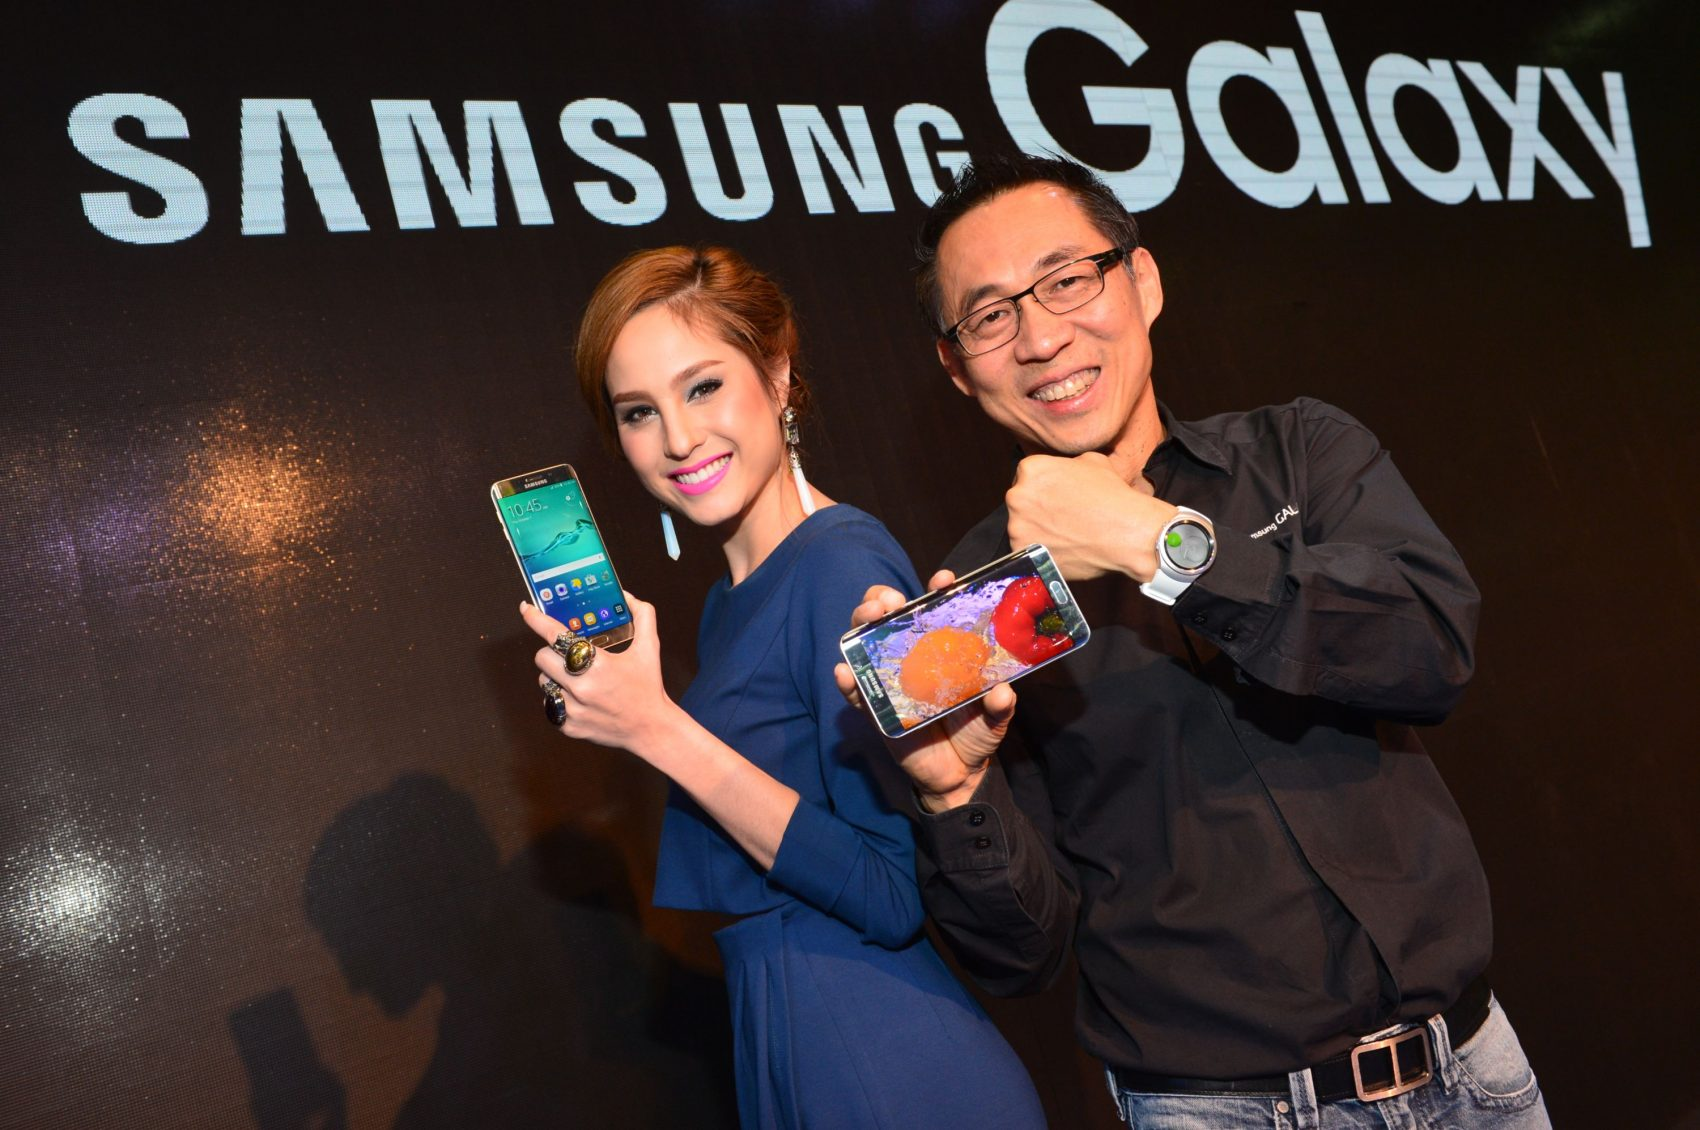 Samsung เปิดตัว Galaxy S6 edge+ และ Gear S2 ในงาน Thailand Mobile Expo 2015 Showcase